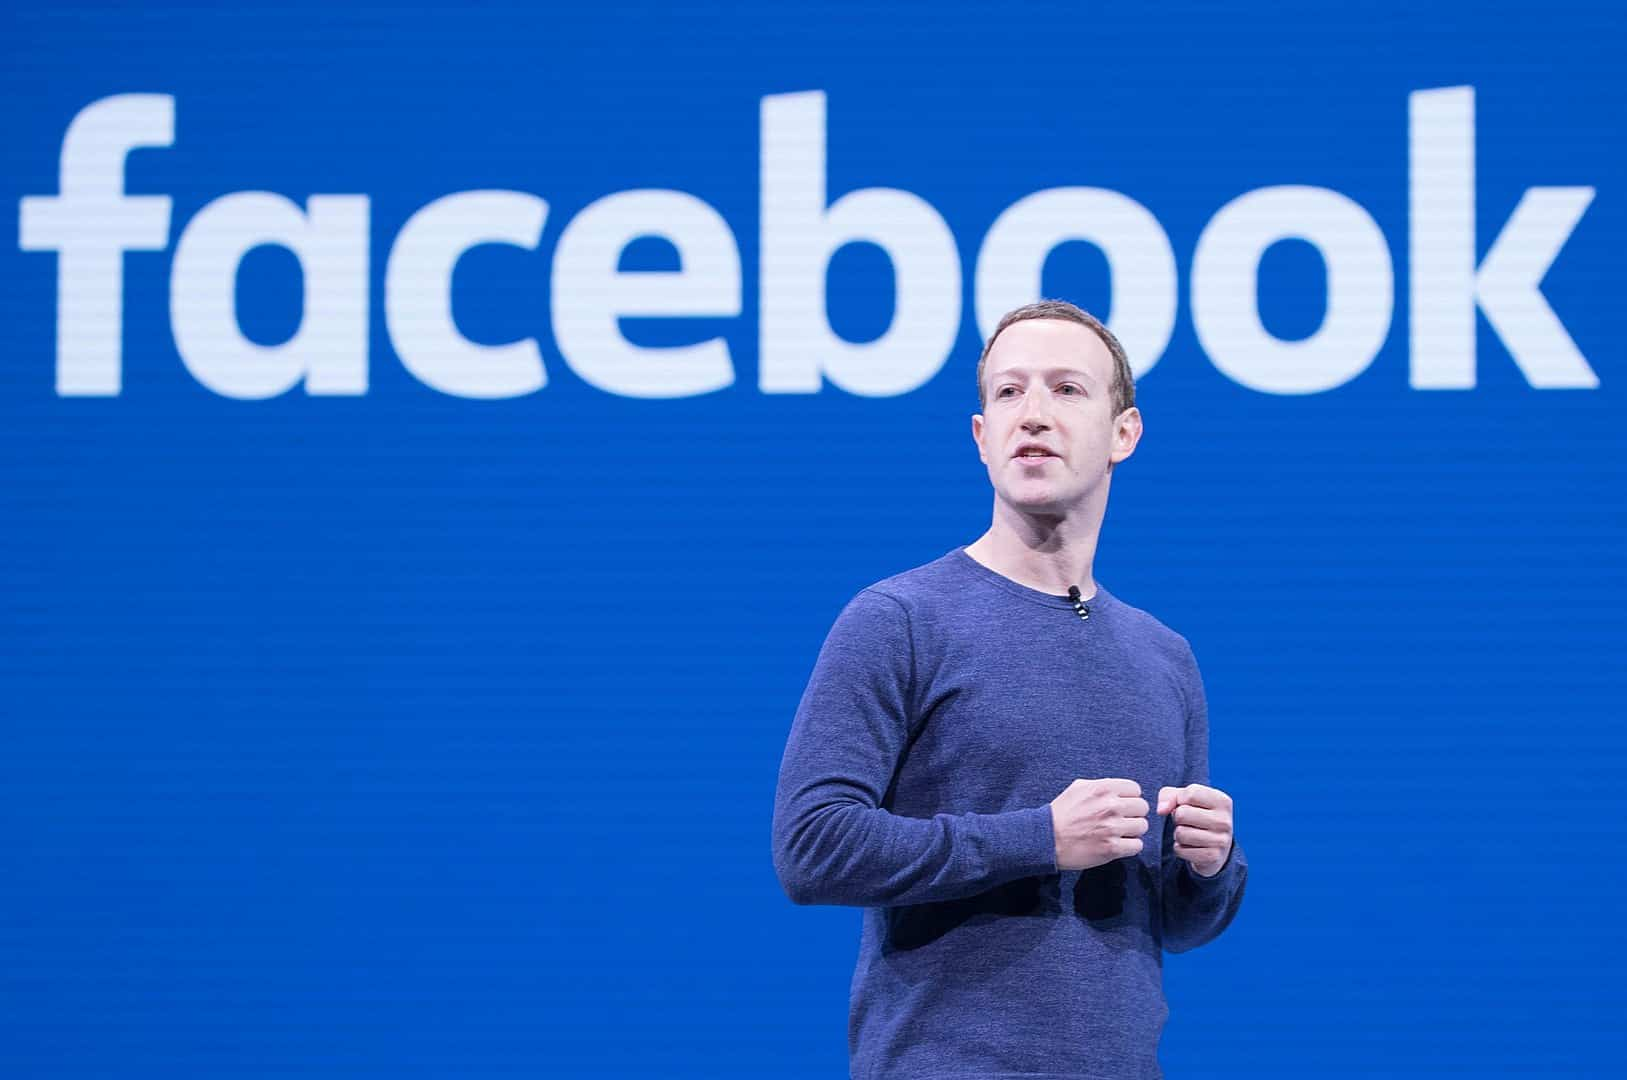 iOS 14 could affect Facebook's ad business